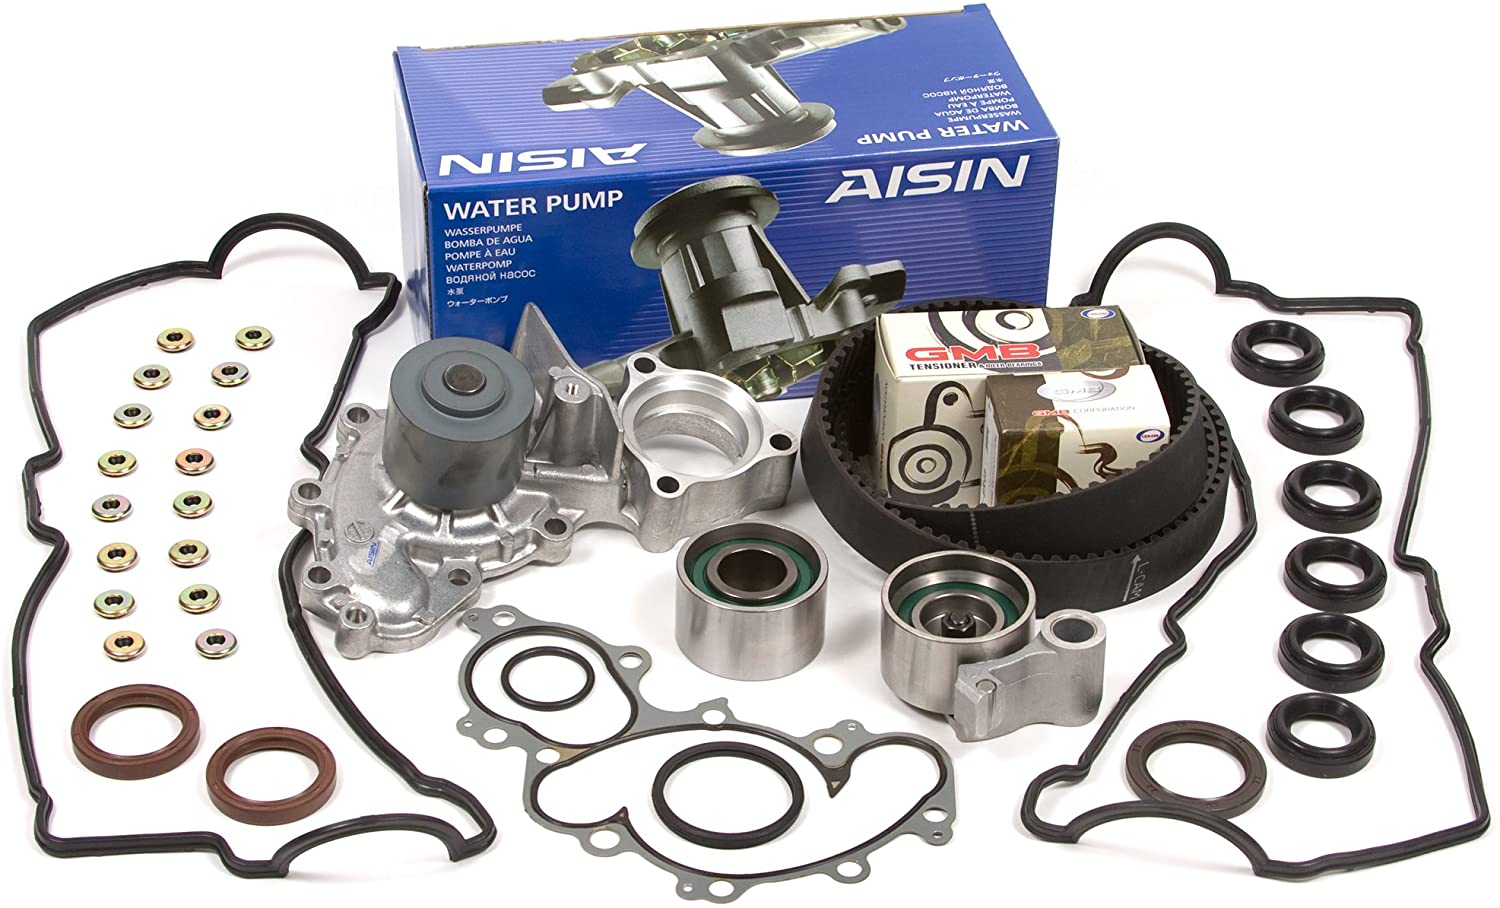 Compatible With 92-93 Toyota Lexus 3.0 DOHC 24V 3VZFE Timing Belt Kit AISIN Water Pump Valve Cover Gasket